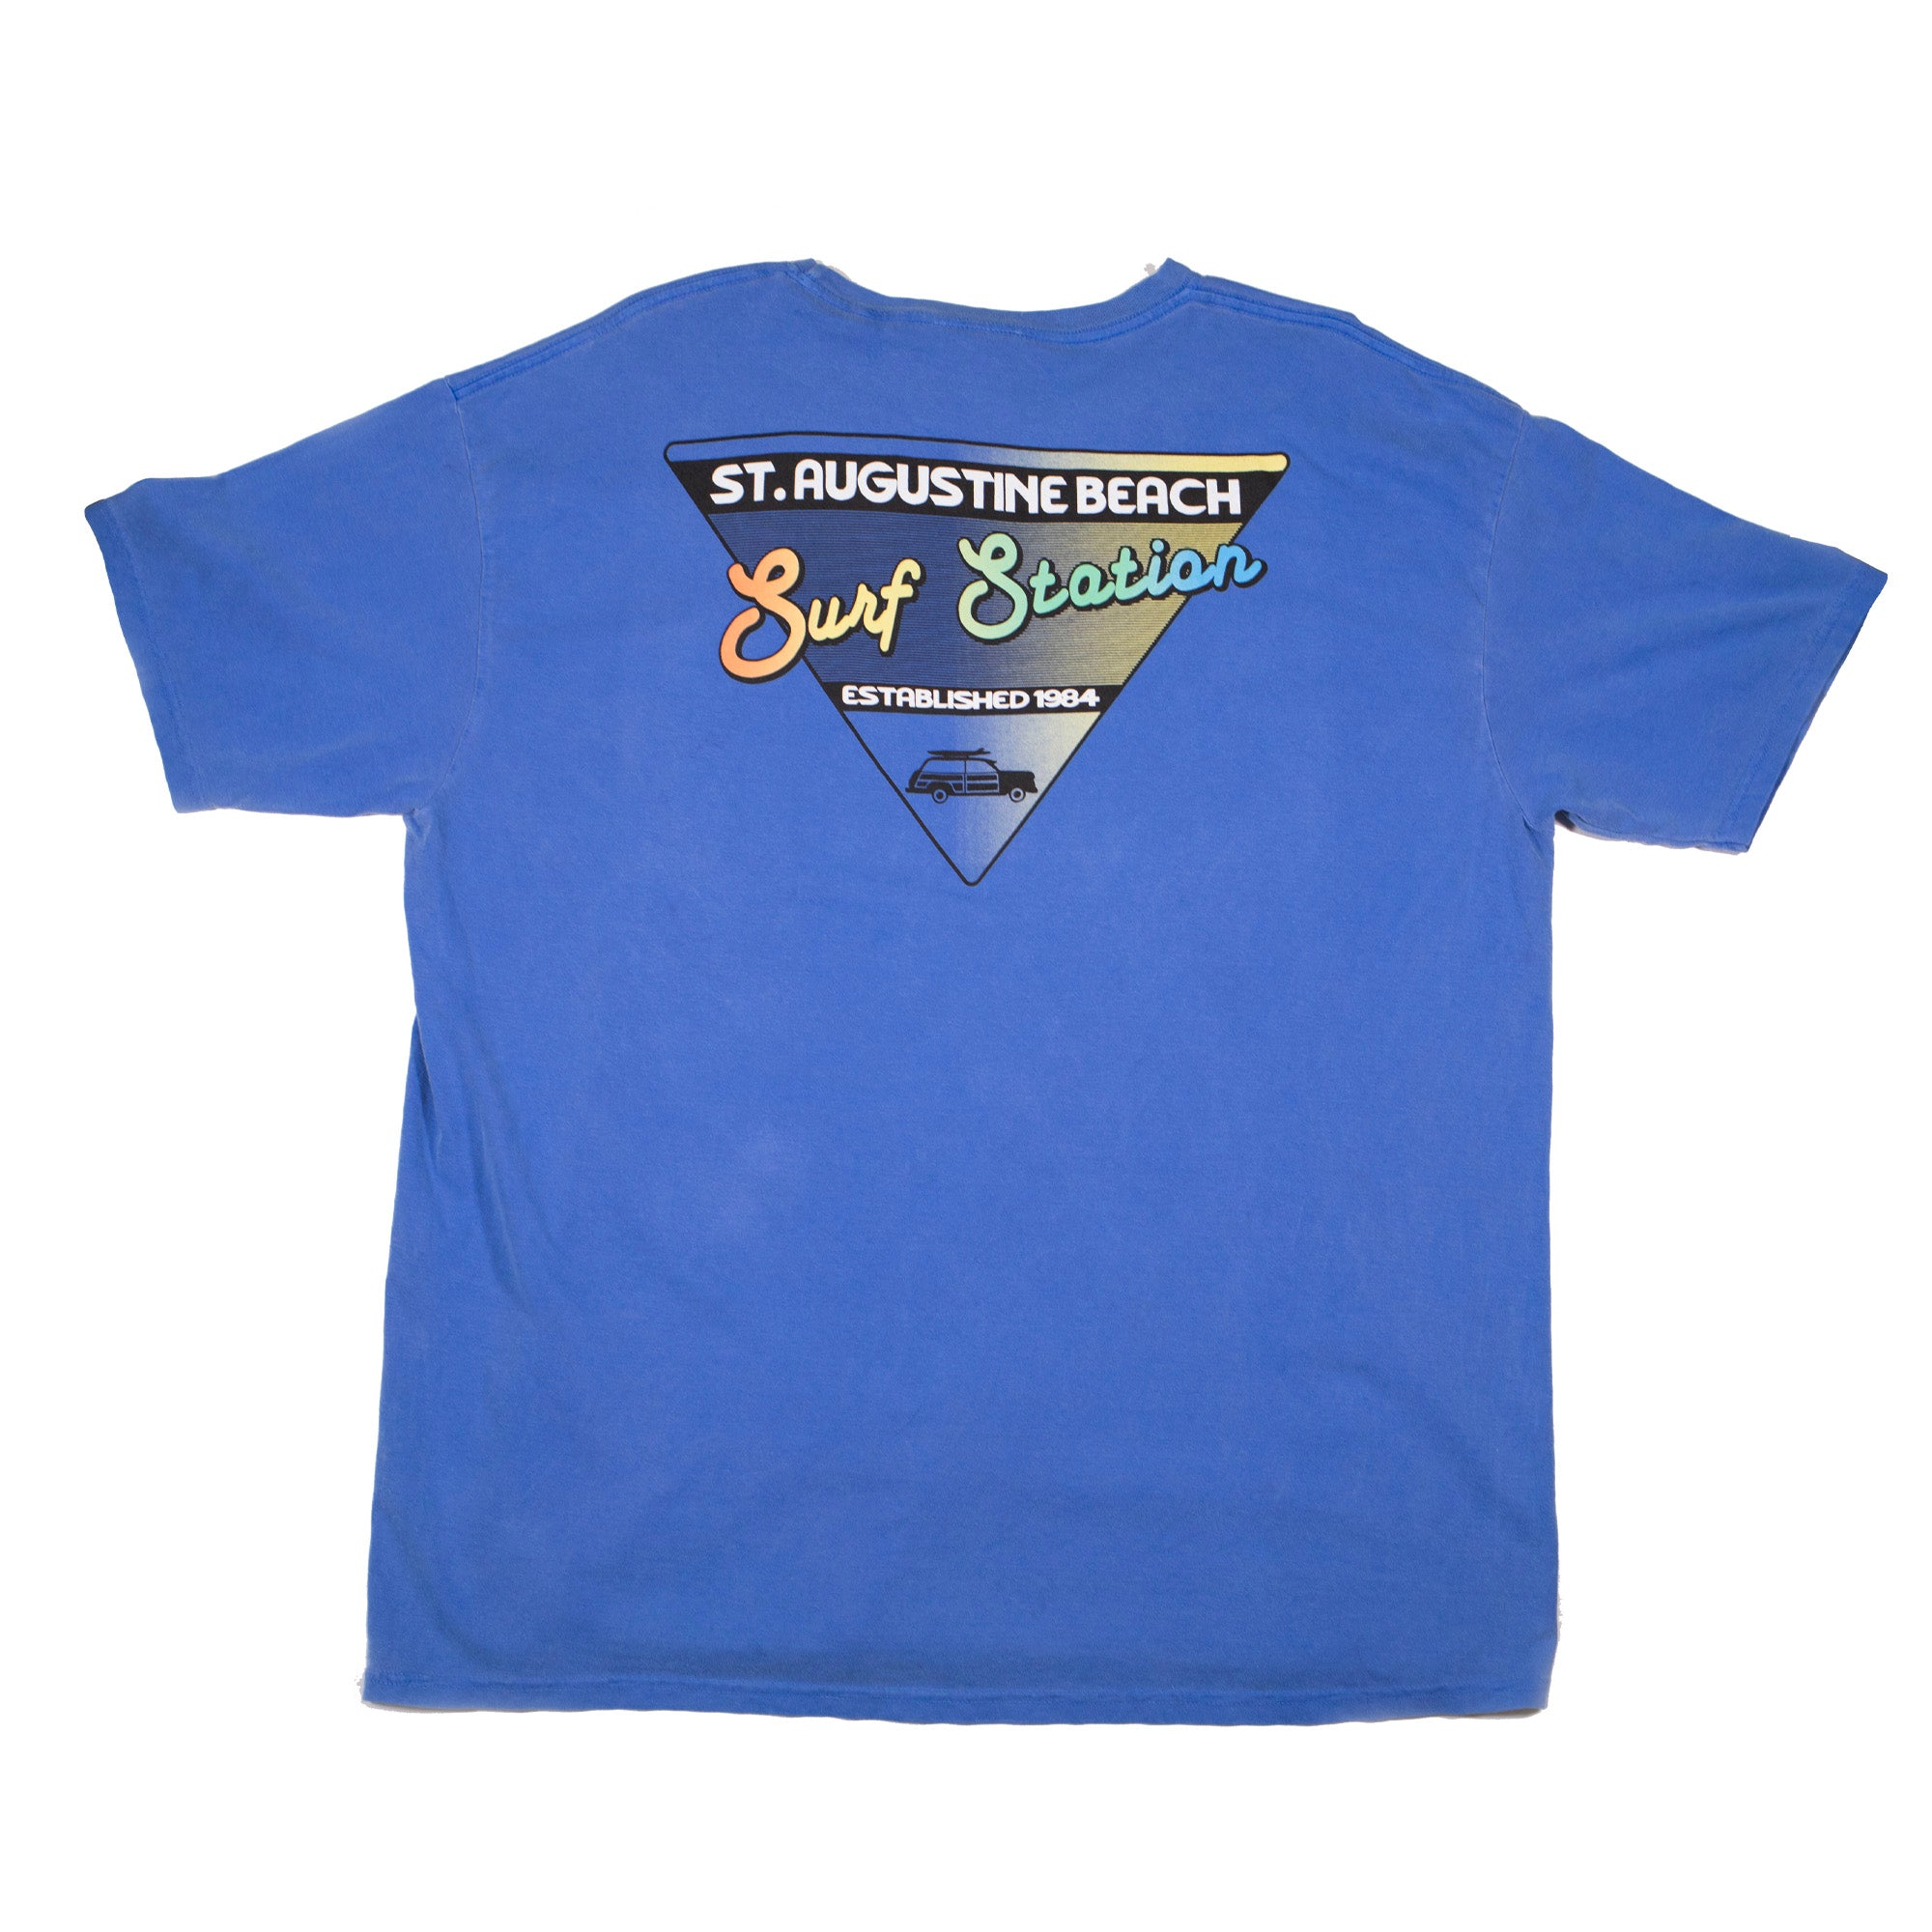 Surf Station Dyed Wingspan Men's S/S T-Shirt